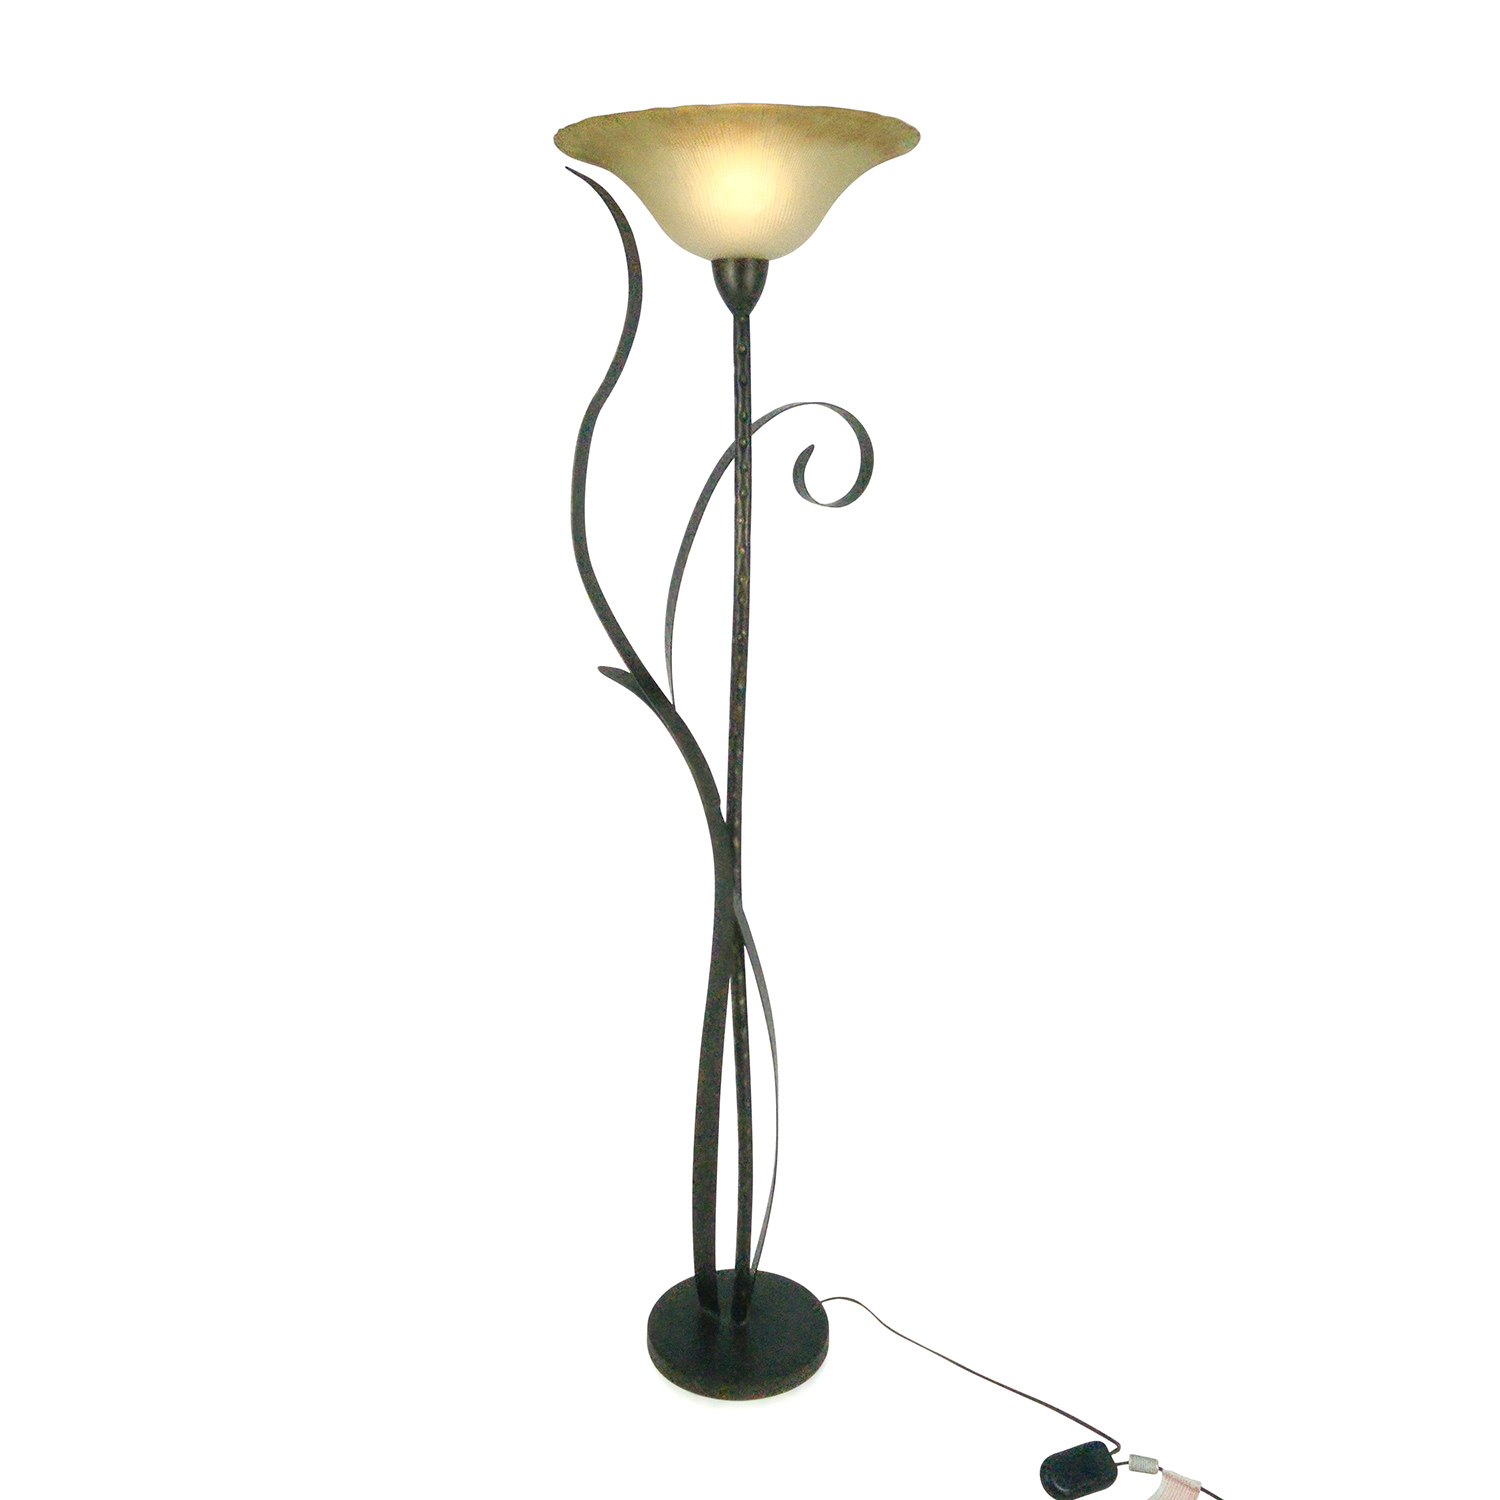 Decorative Floor Lamp dimensions